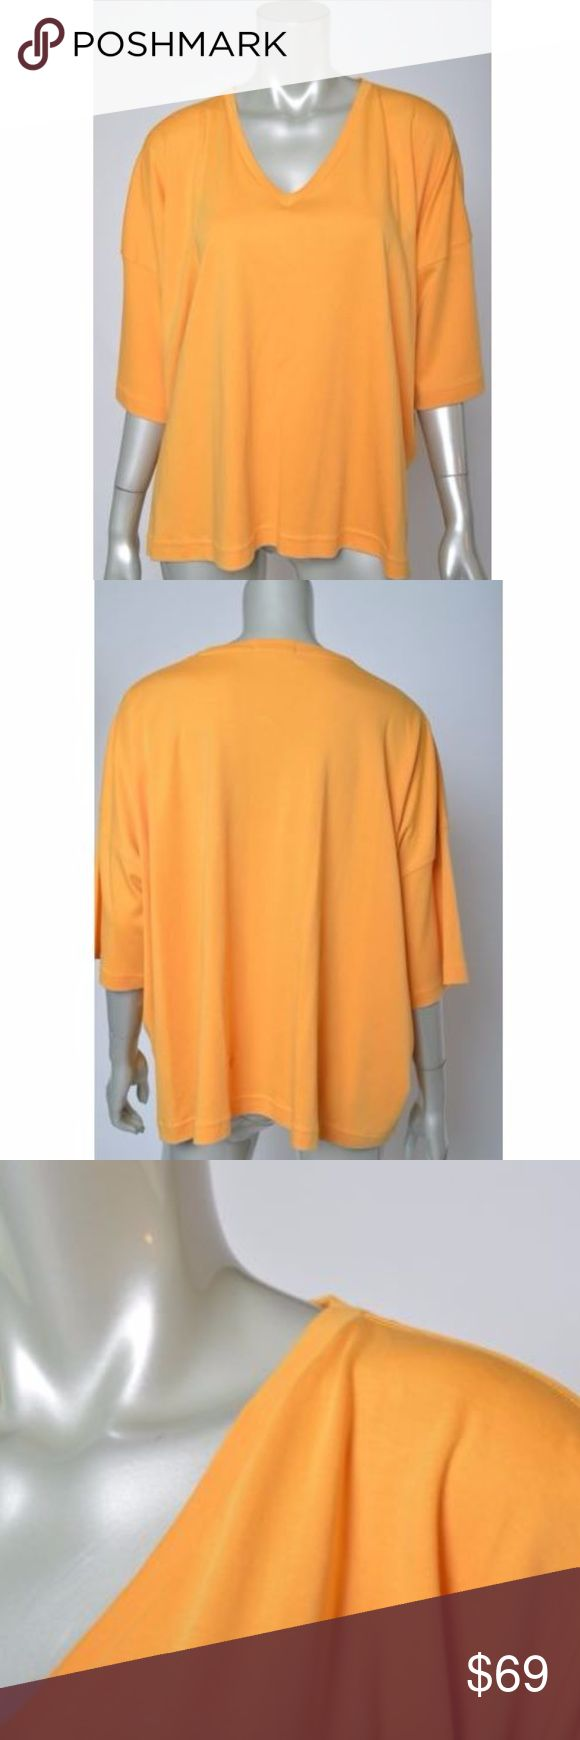 Eskander Orange Knit V Neck Batwing Shirt Top OS Total length is 27 inches Bust is 62 inches, unstretched One Size Excellent condition Eskander Tops